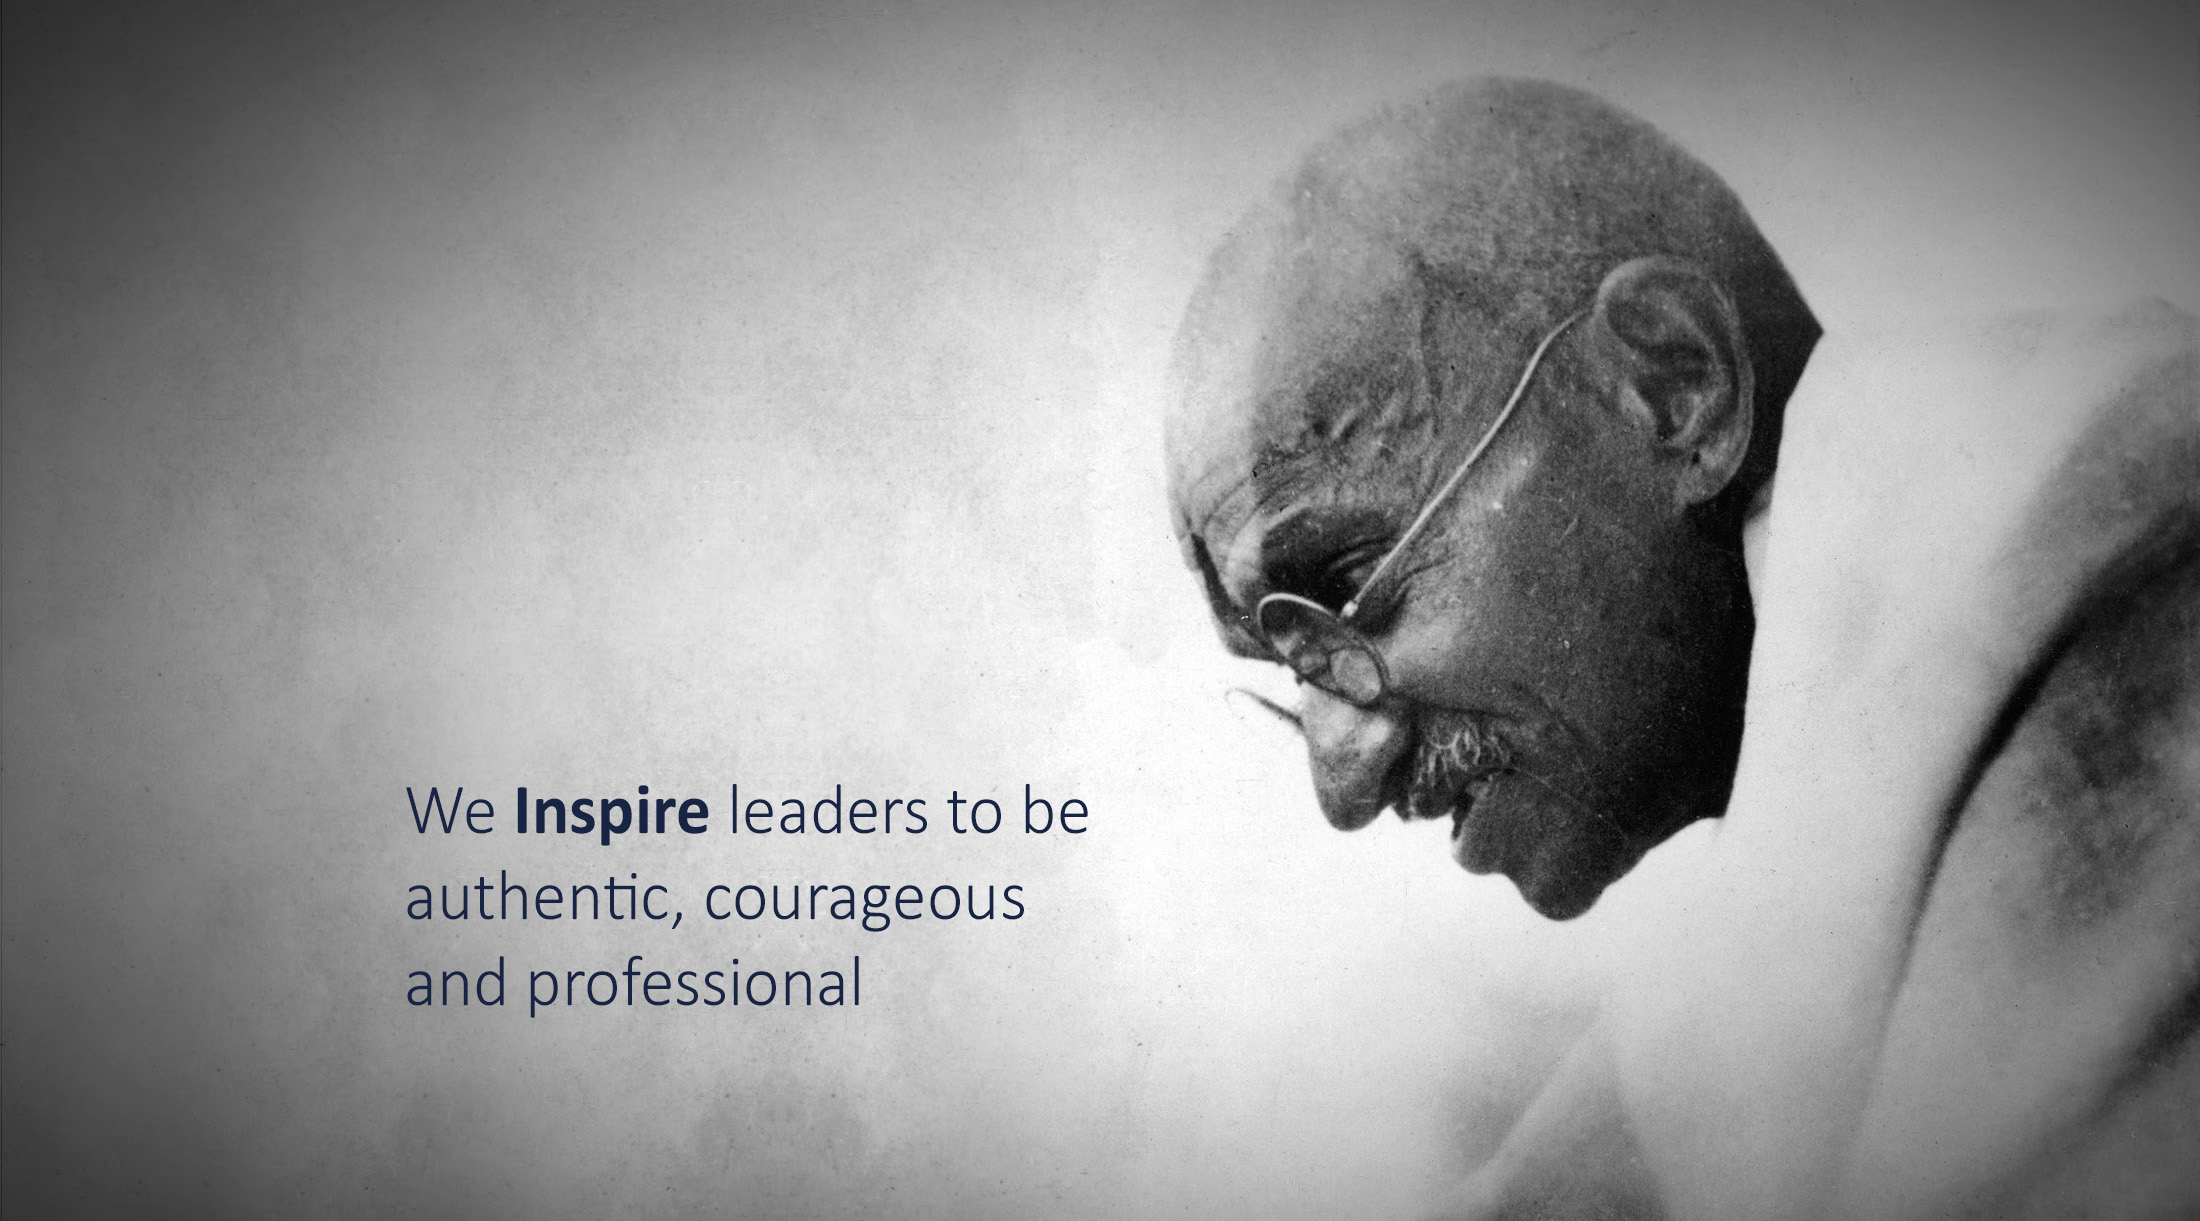 We inspire leaders